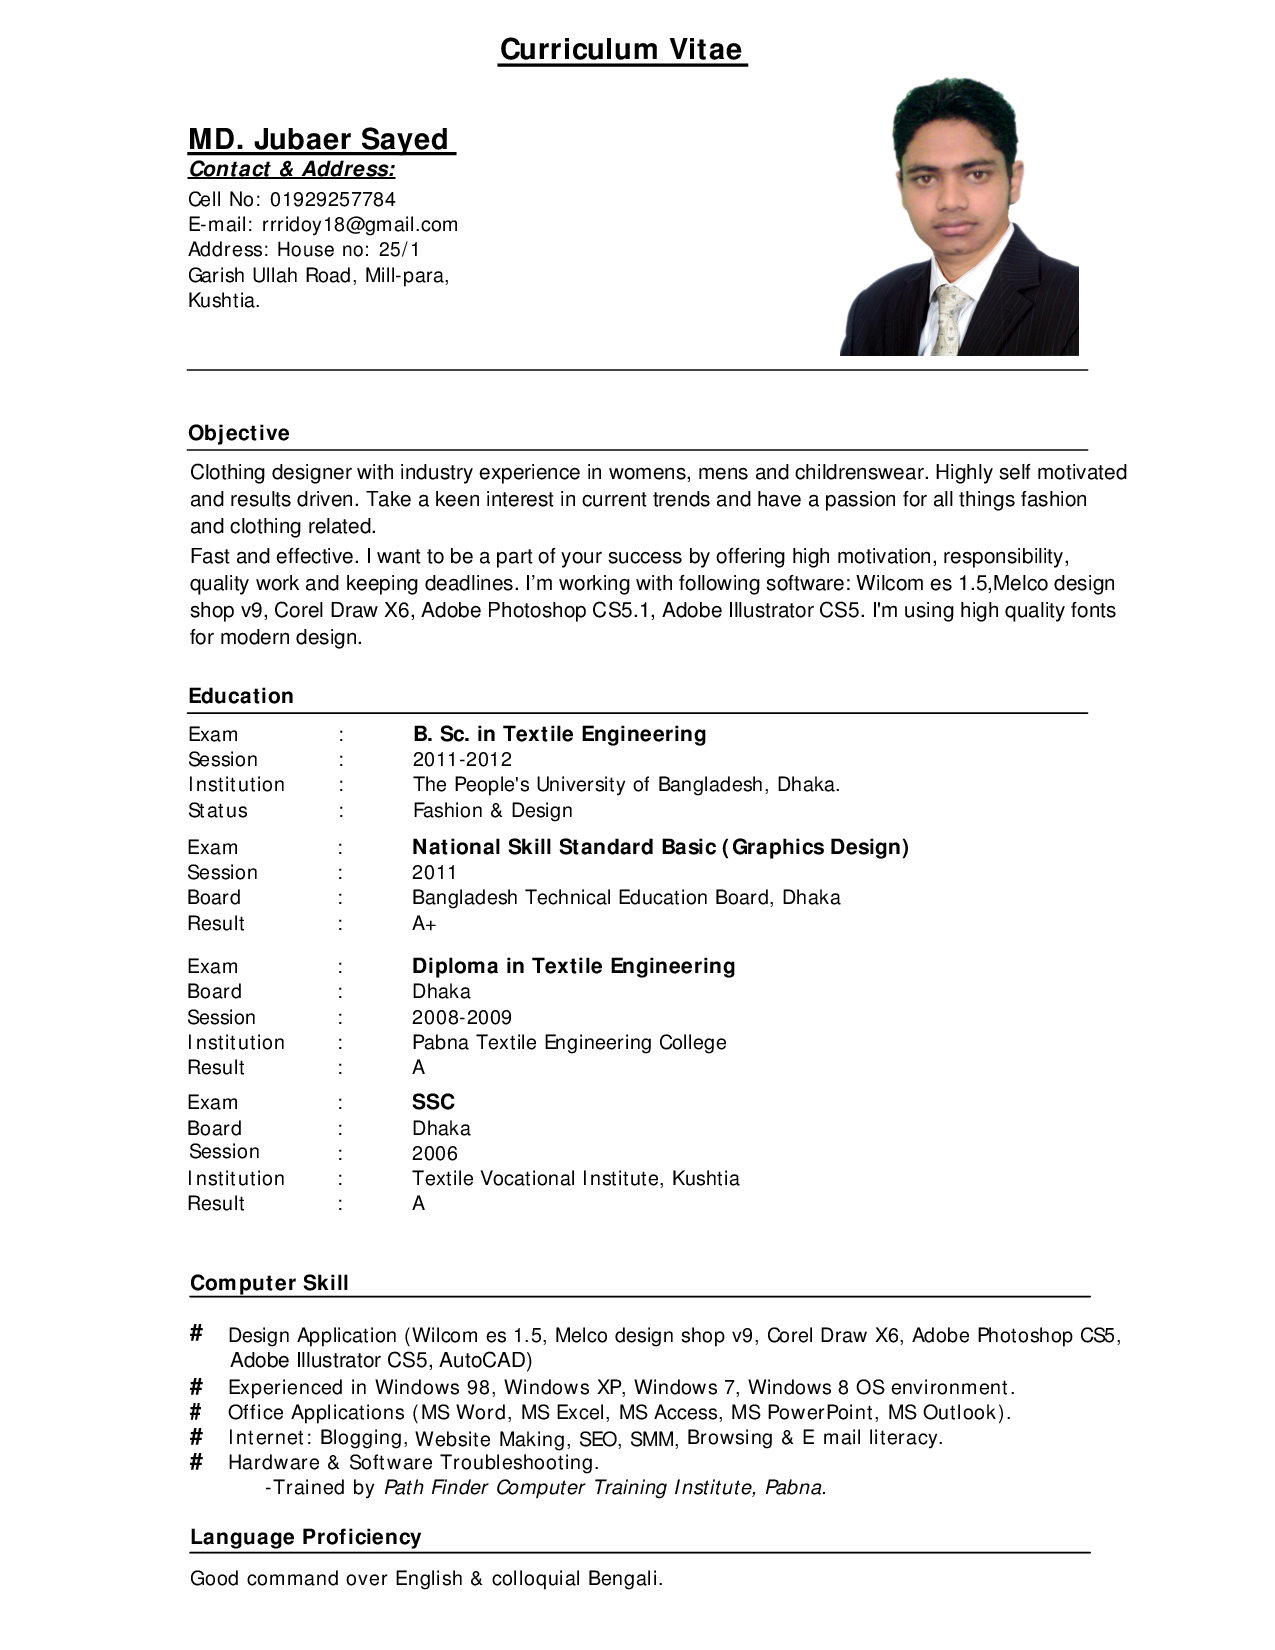 few tips on writing a perfect curriculum vitae